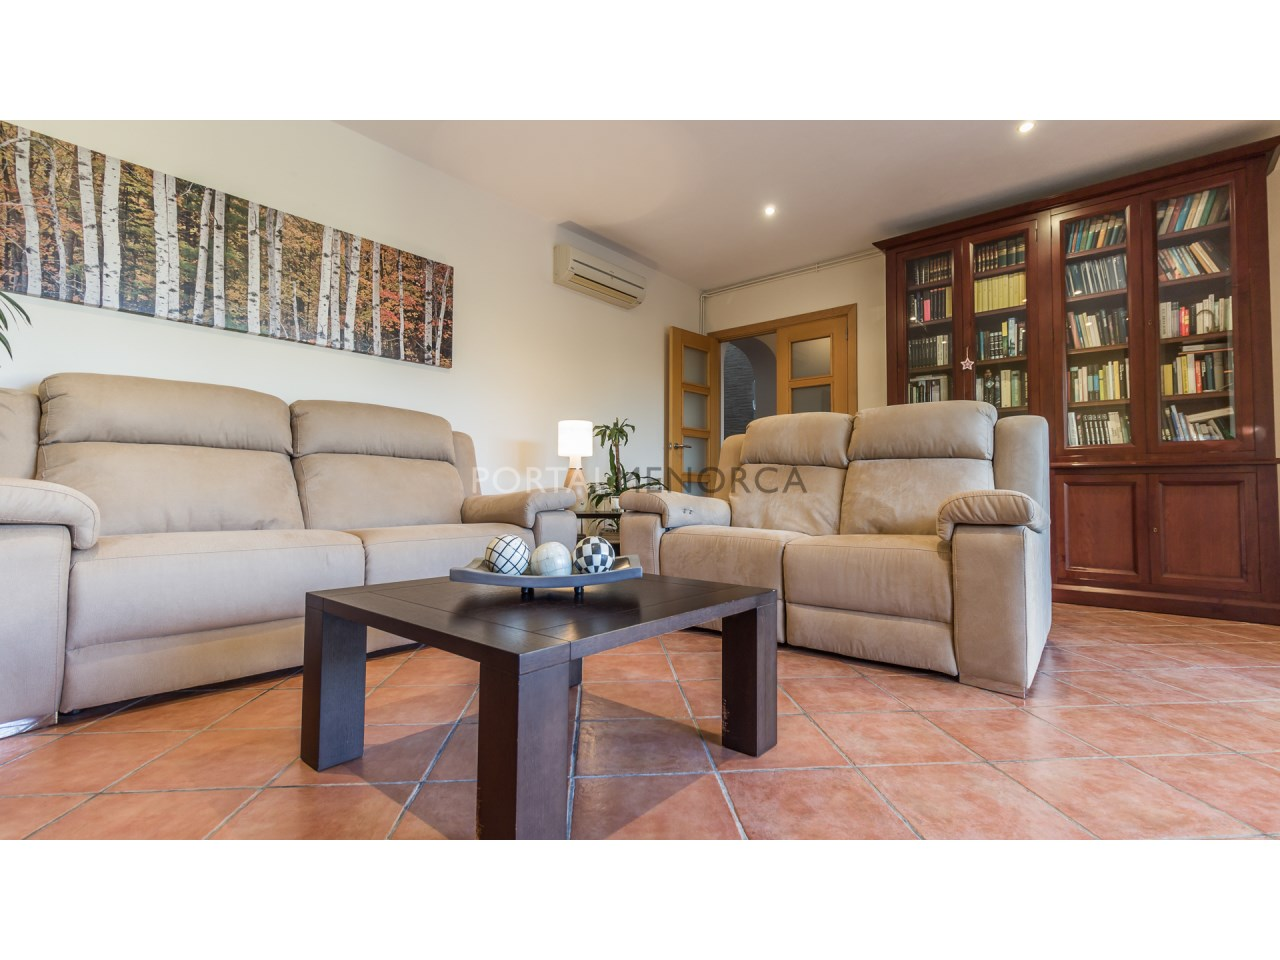 villa for sale in Trebaluger Menorca (9 de 24)